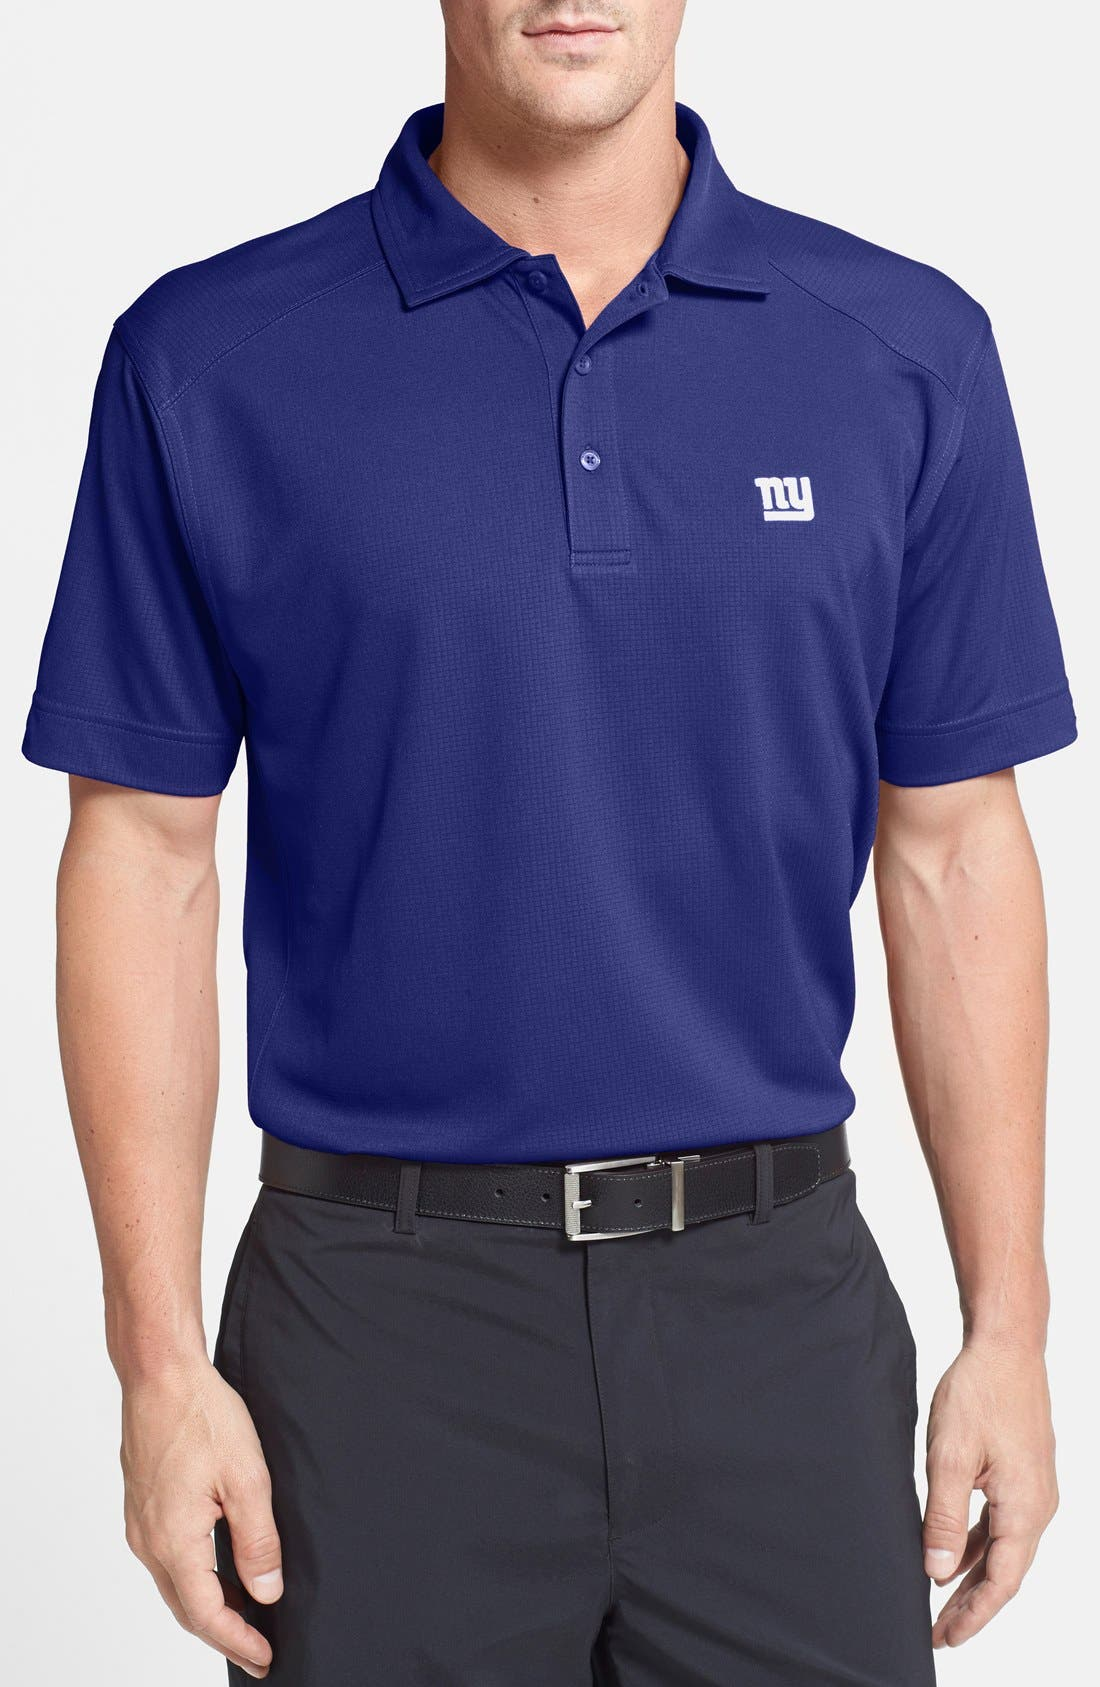 'New York Giants - Genre' DryTec Moisture Wicking Polo,                         Main,                         color, Tour Blue